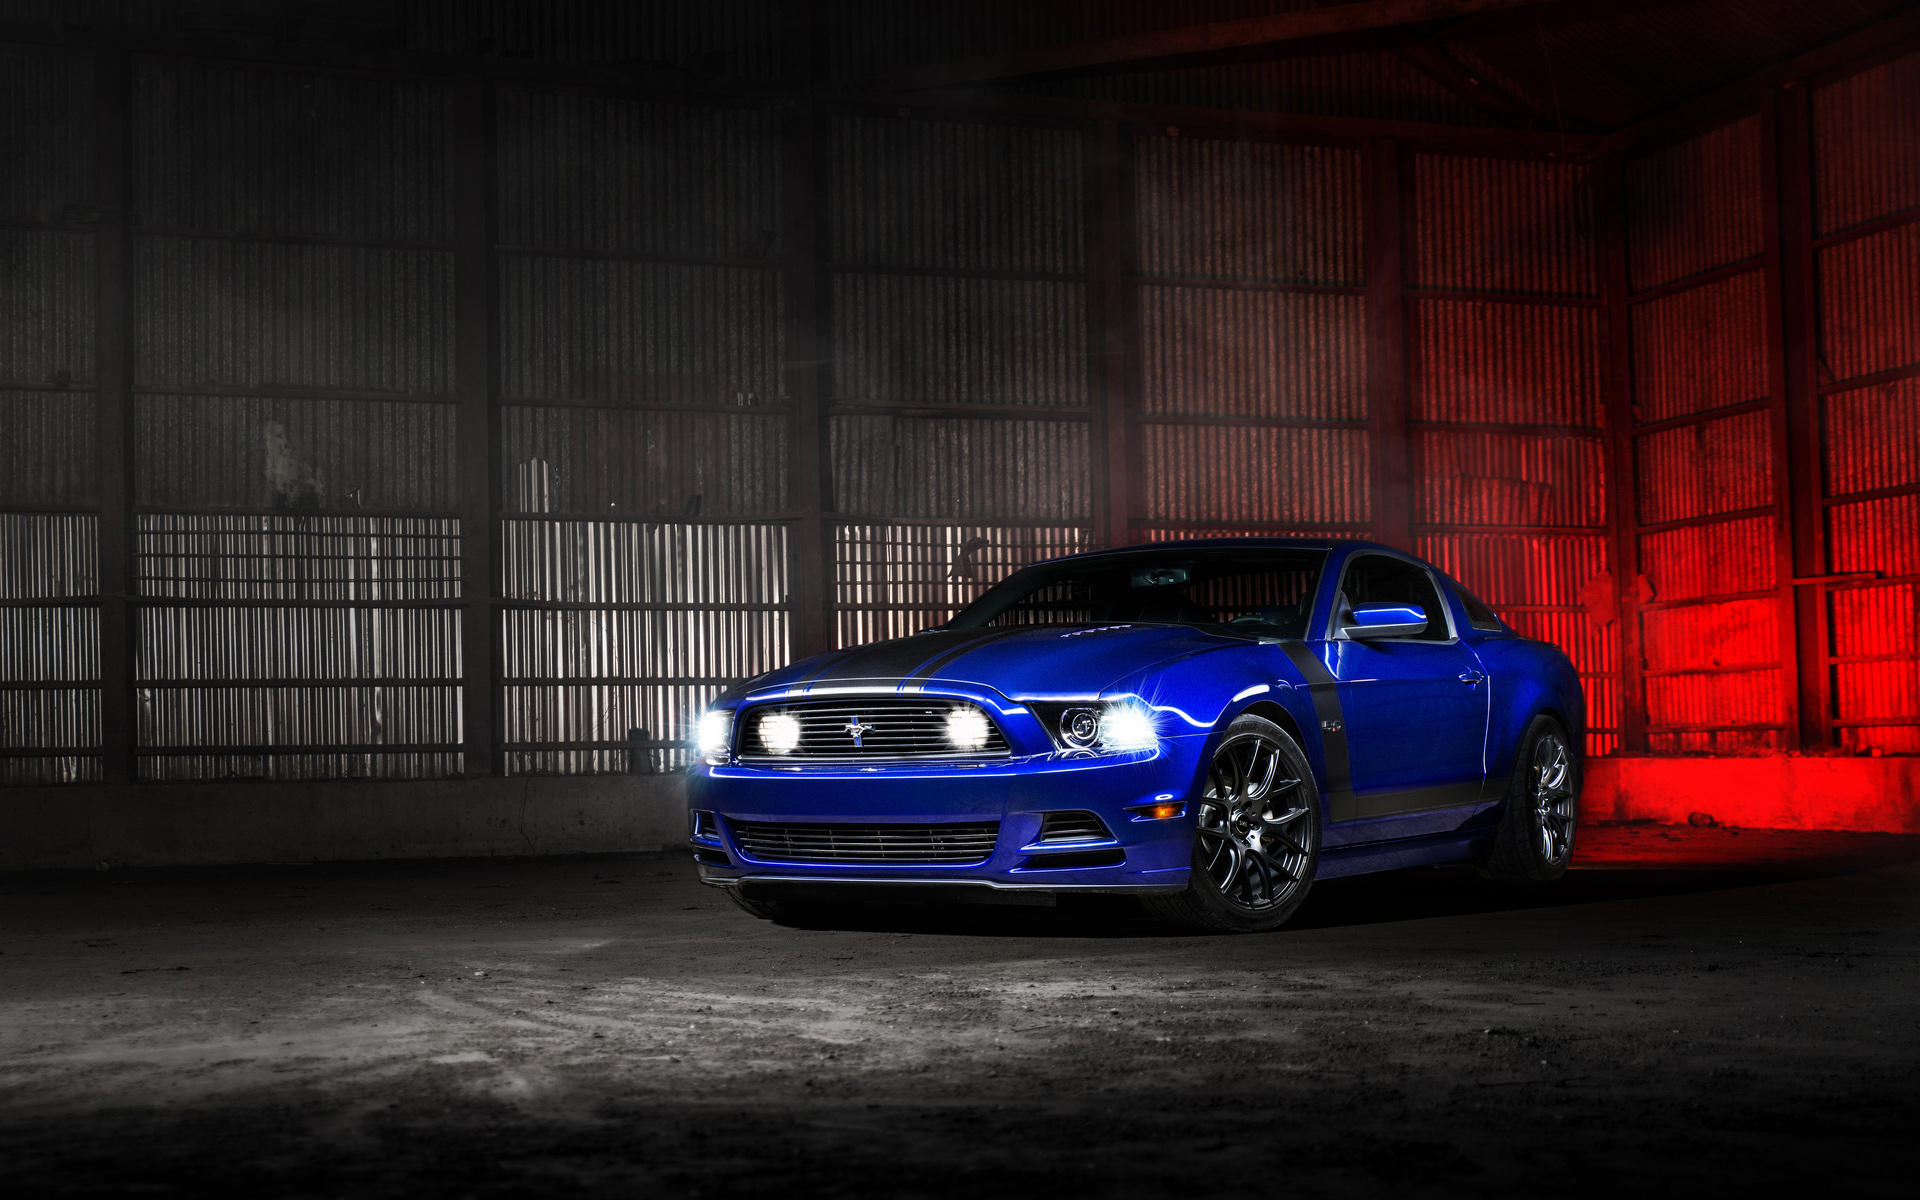 Ford Mustang Need For Speed Car Wallpaper Free Desktop Backgrounds